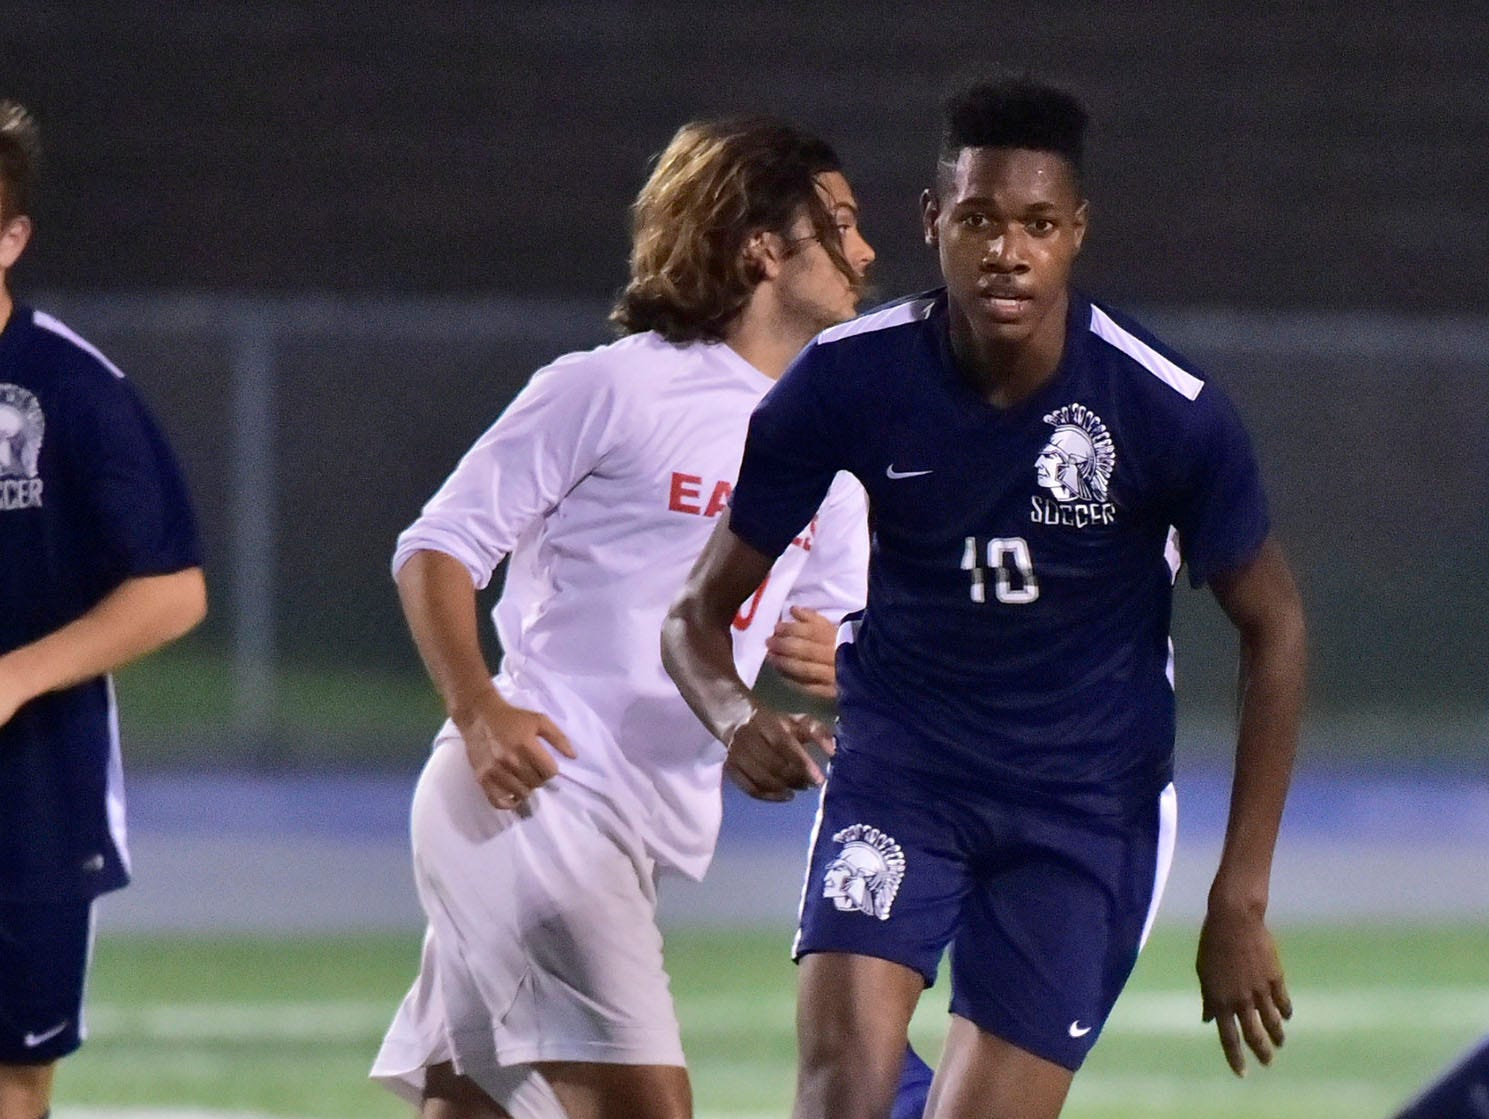 Omarlo Duncan (10) moves in on the ball for the Trojans. Chambersburg hosted Cumberland Valley in PIAA soccer on Thursday, Oct. 4, 2018, but dropped a 2-1 match in double overtime.